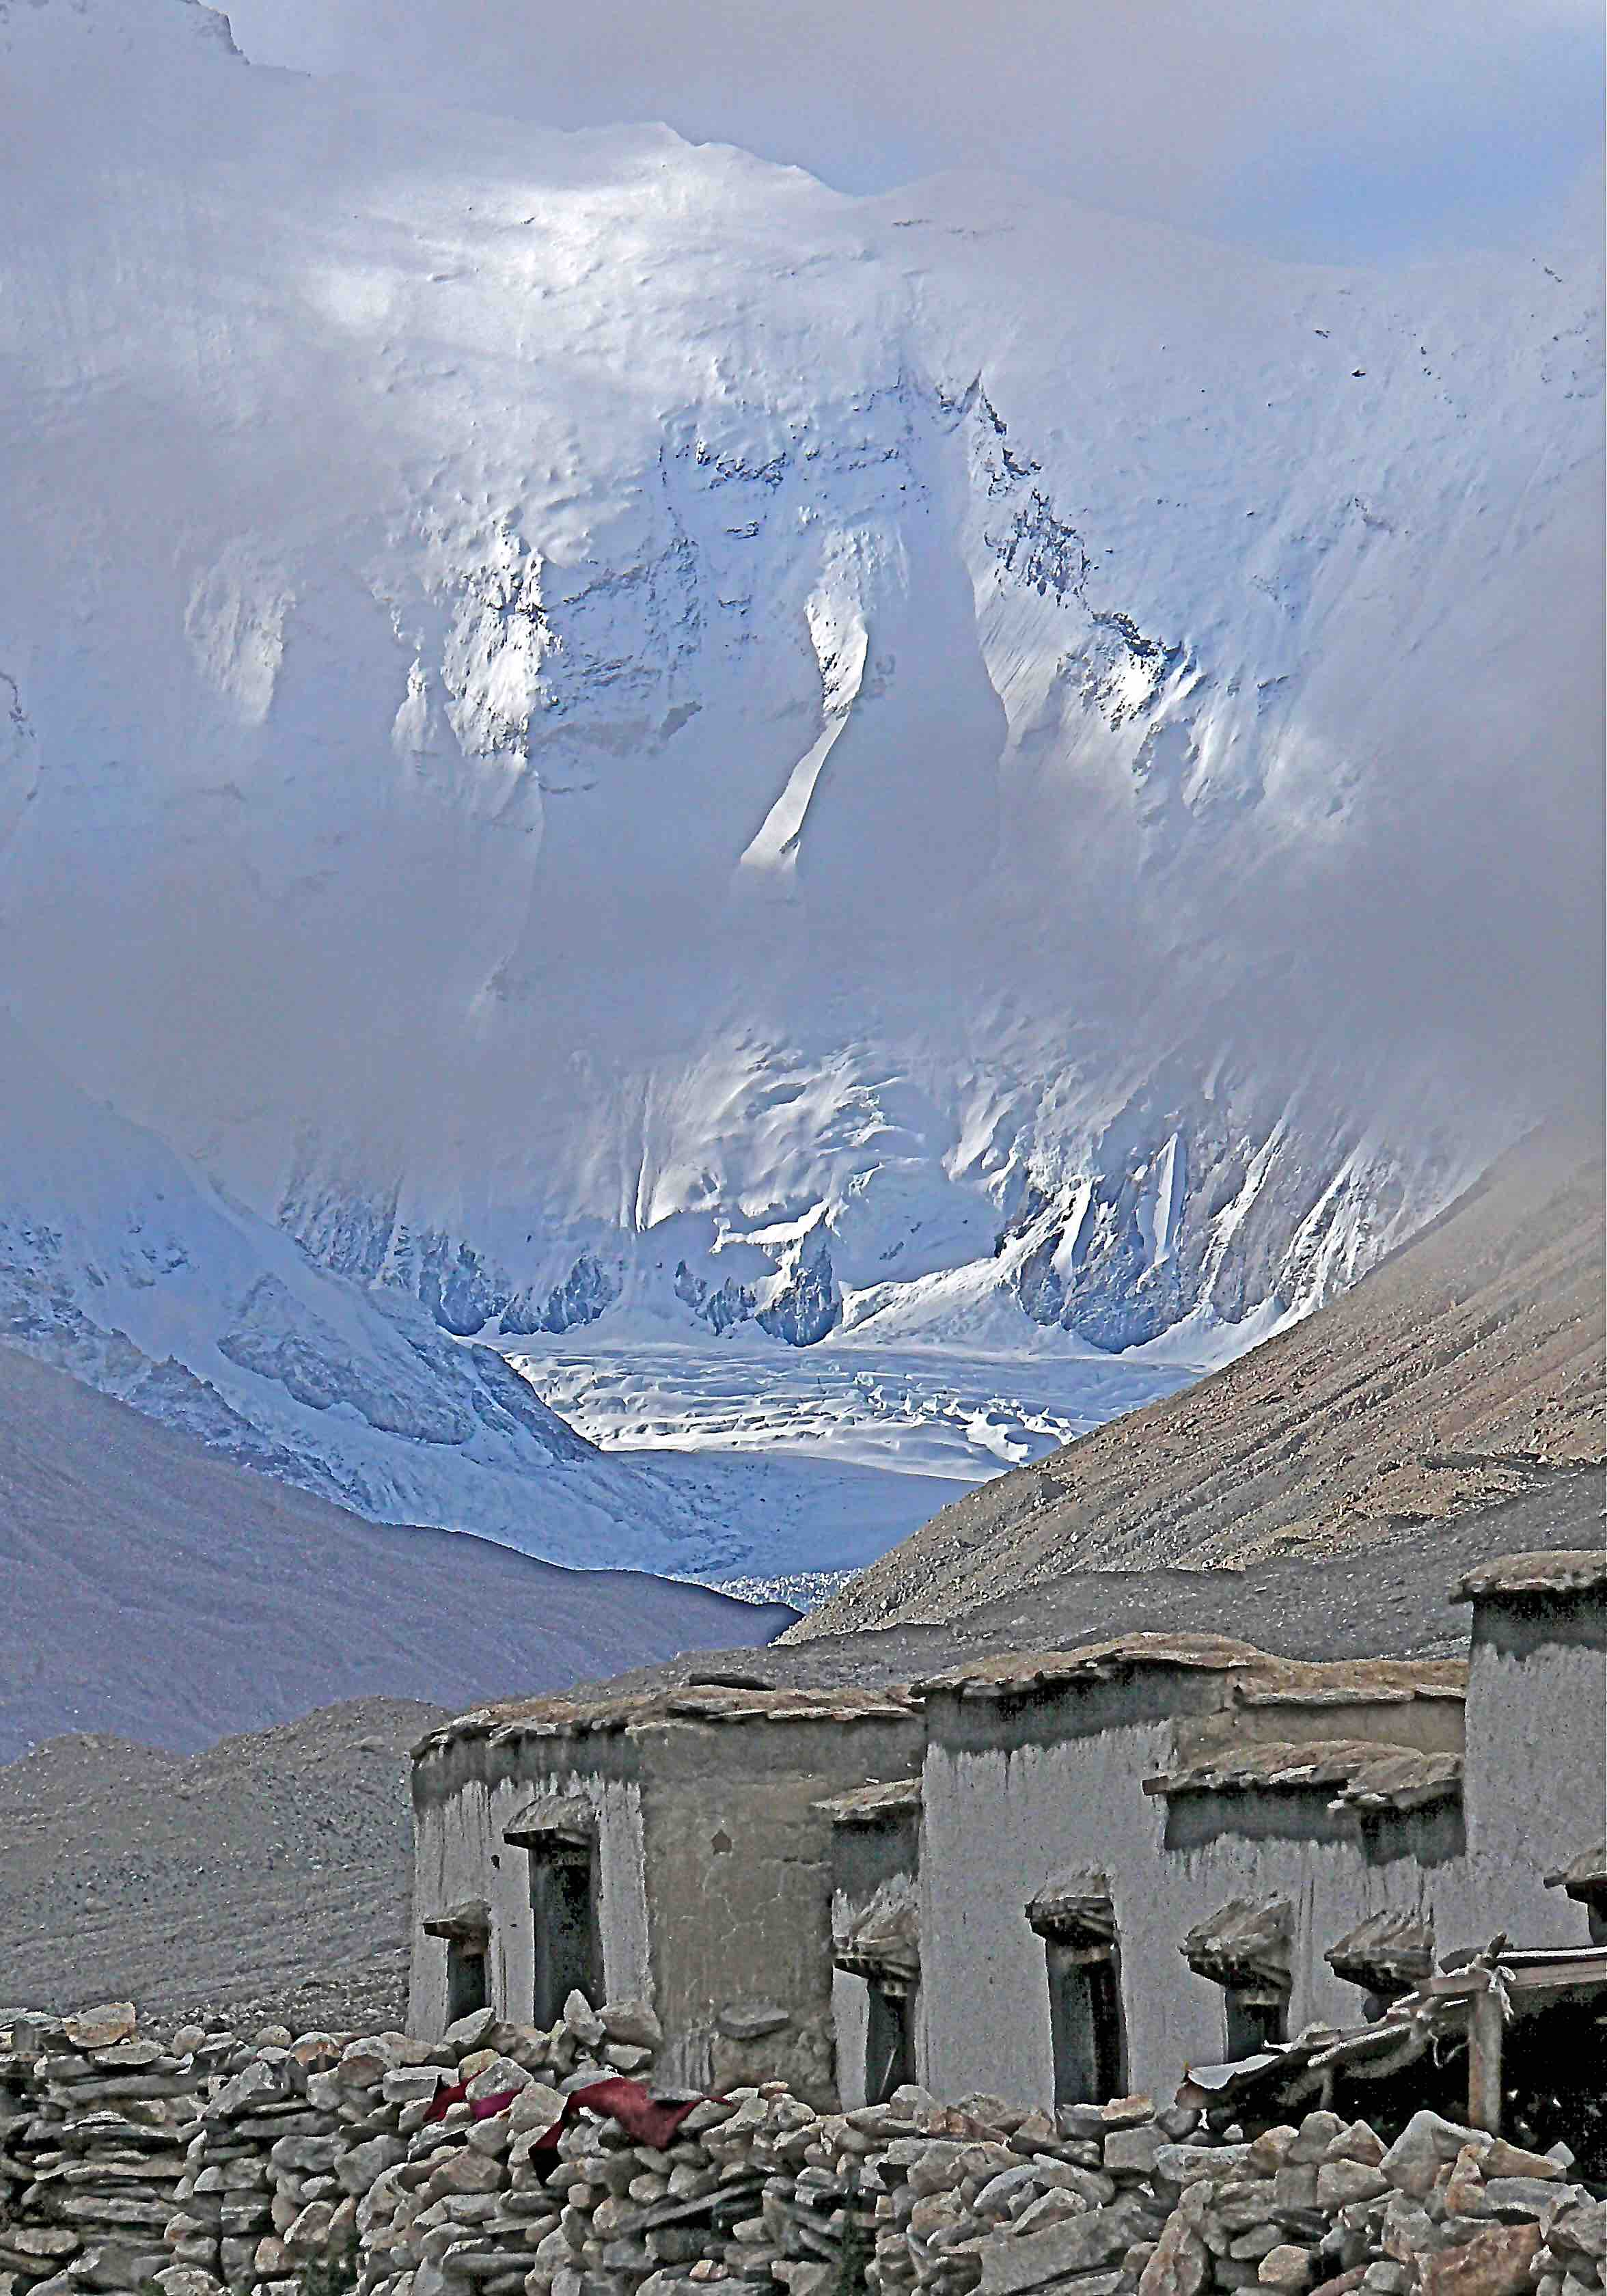 CAC The Buddhist nunnery at Everest - Mike Tompkins PHOTO.jpg